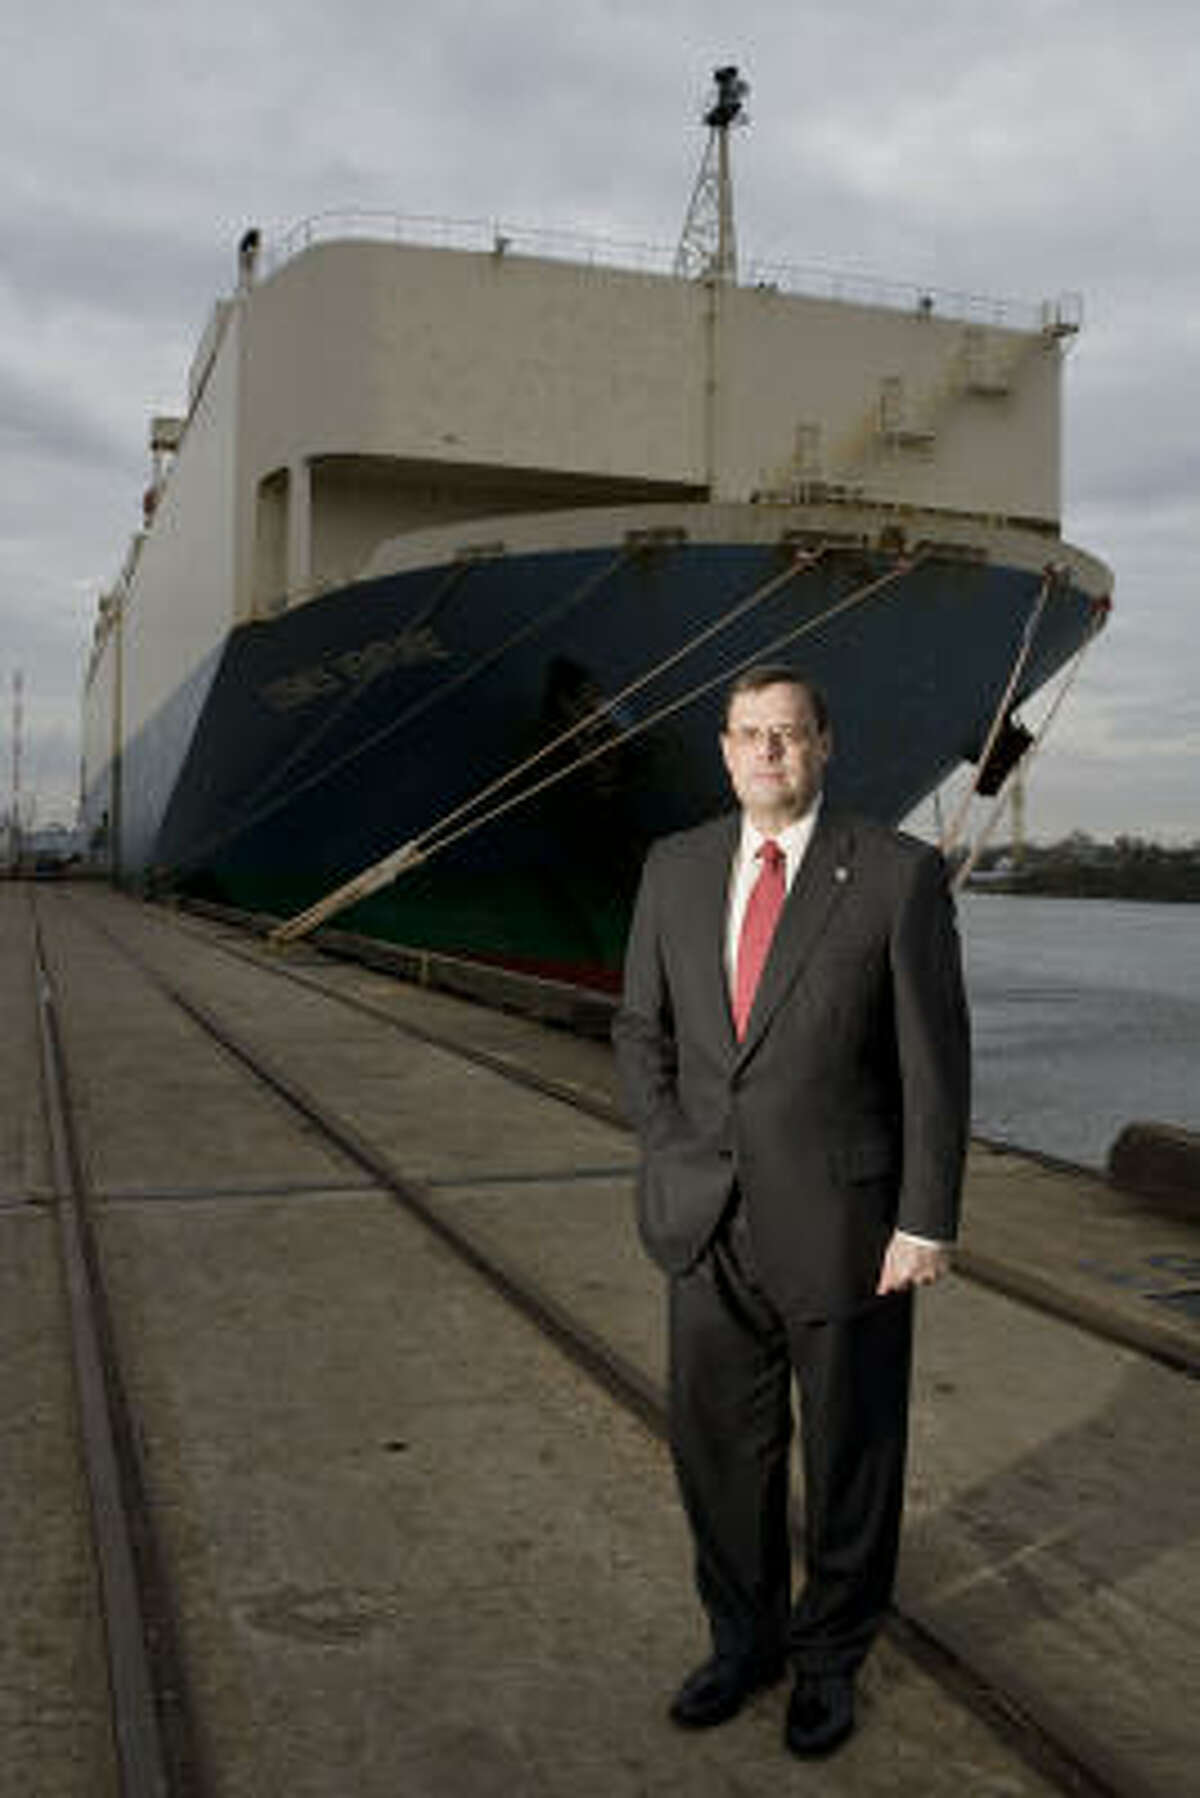 Alec Dreyer is the first person without previous maritime experience to lead the Port of Houston. Fortunately, he has a history of being a quick learner.